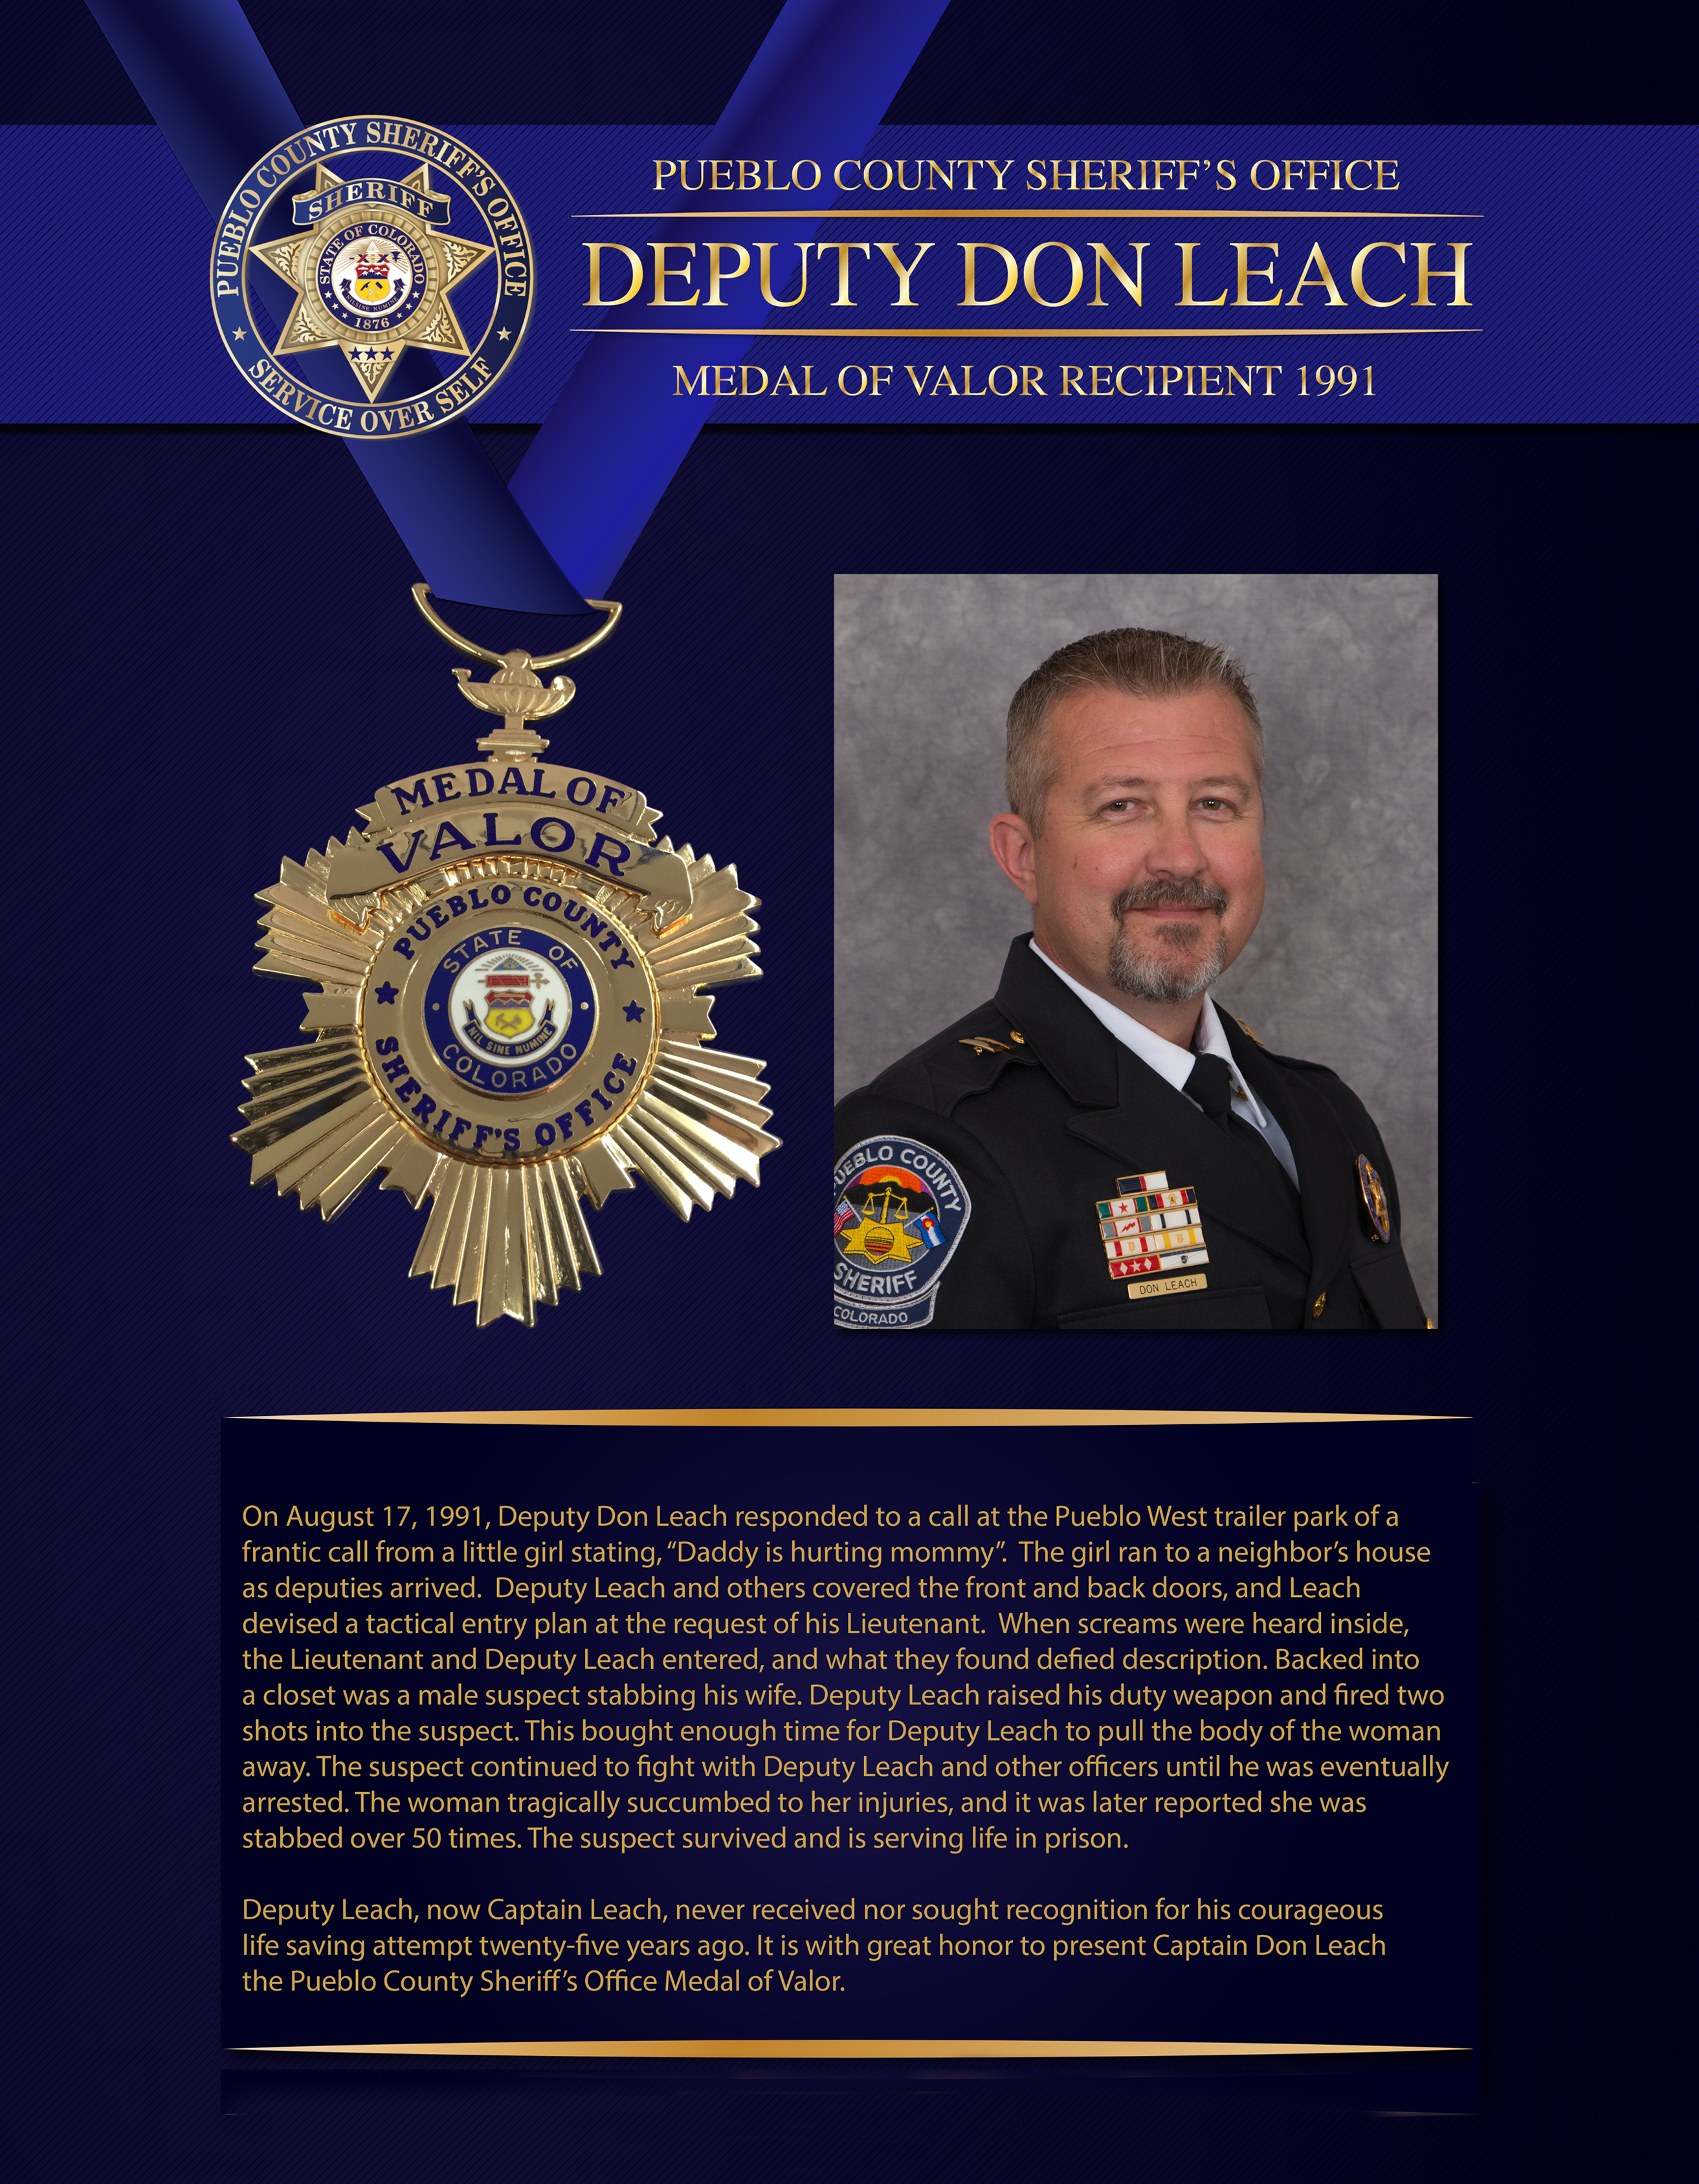 Leach Medal of Valor